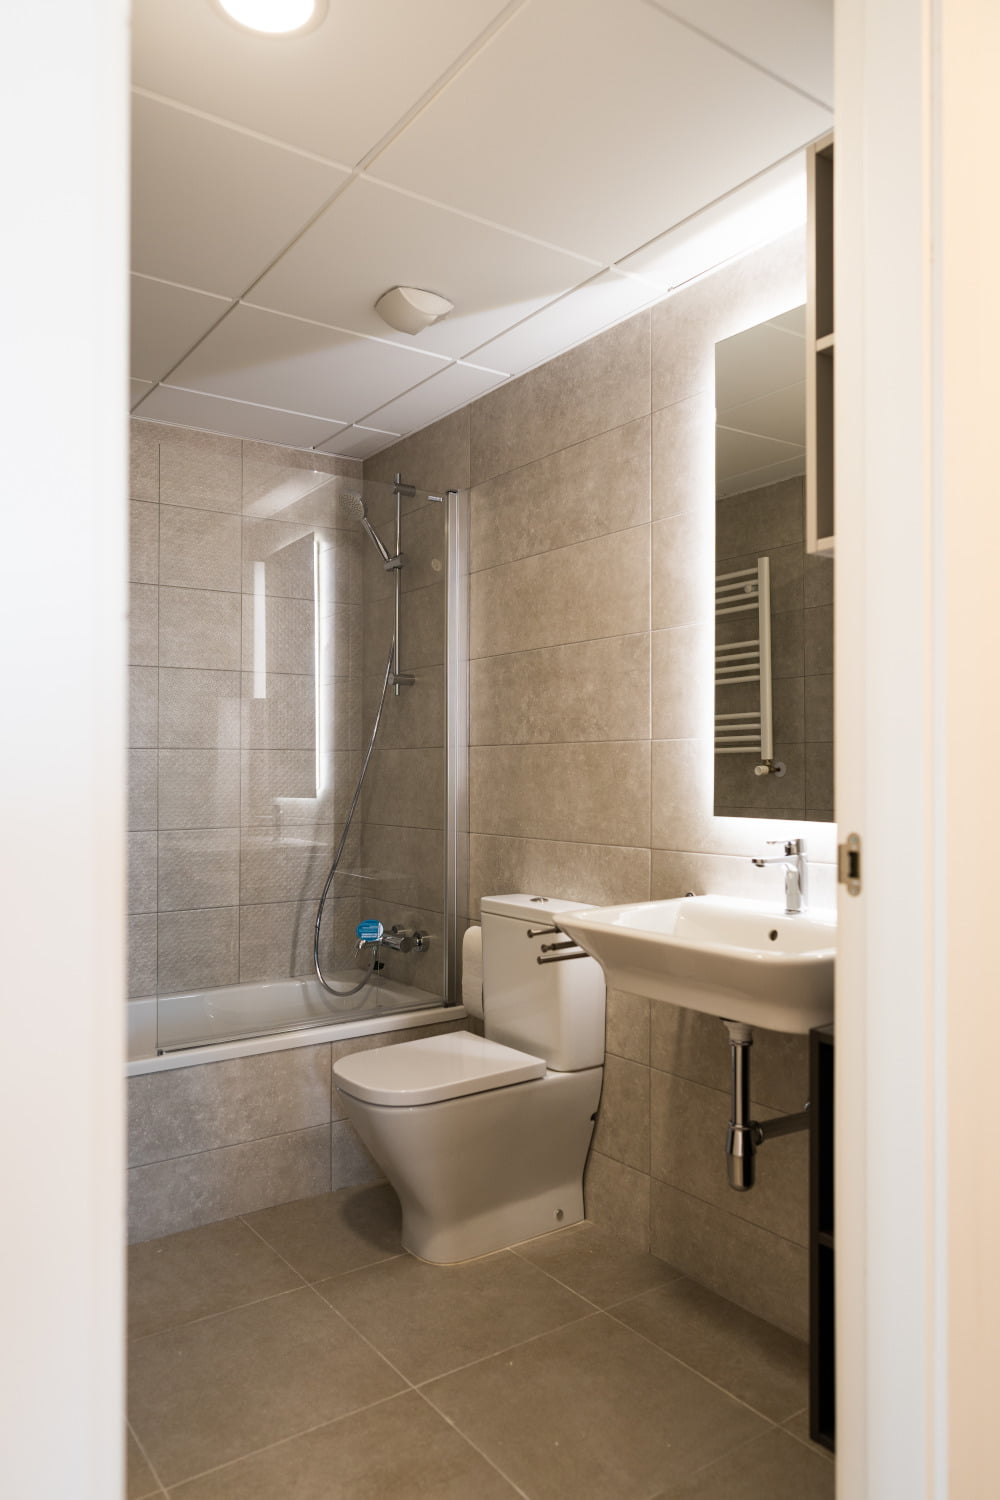 Saler - Exclusive luxury apartment in Valencia for expats